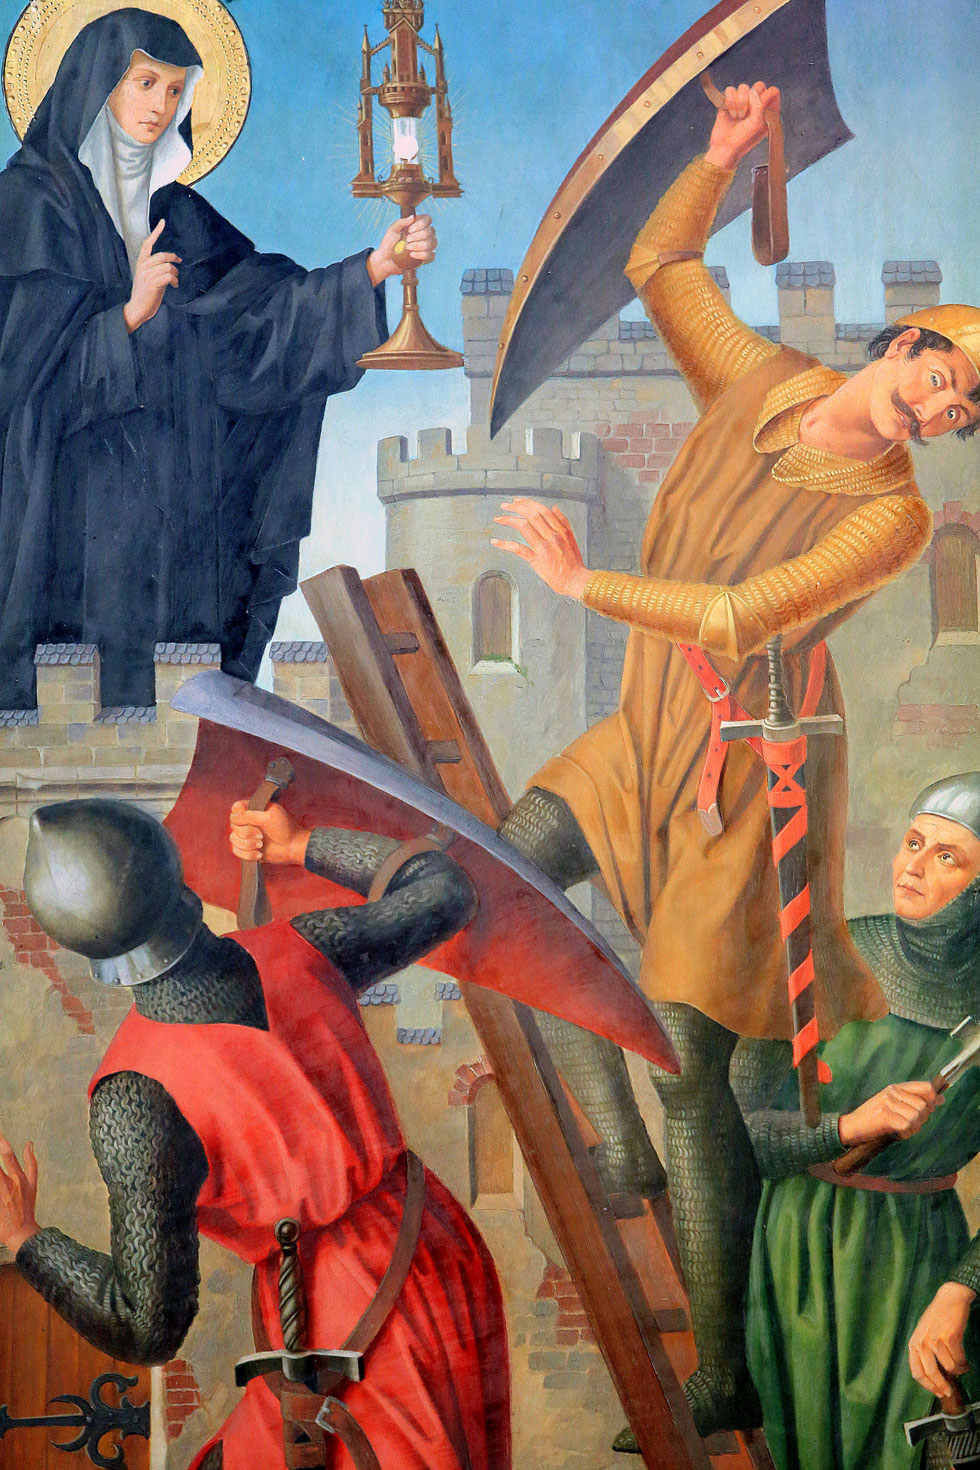 Right paint. St. Clair pushes the Saracens. Neo-Gothic triptych from the late 19th century. St. Stephen Cathedral of Metz.